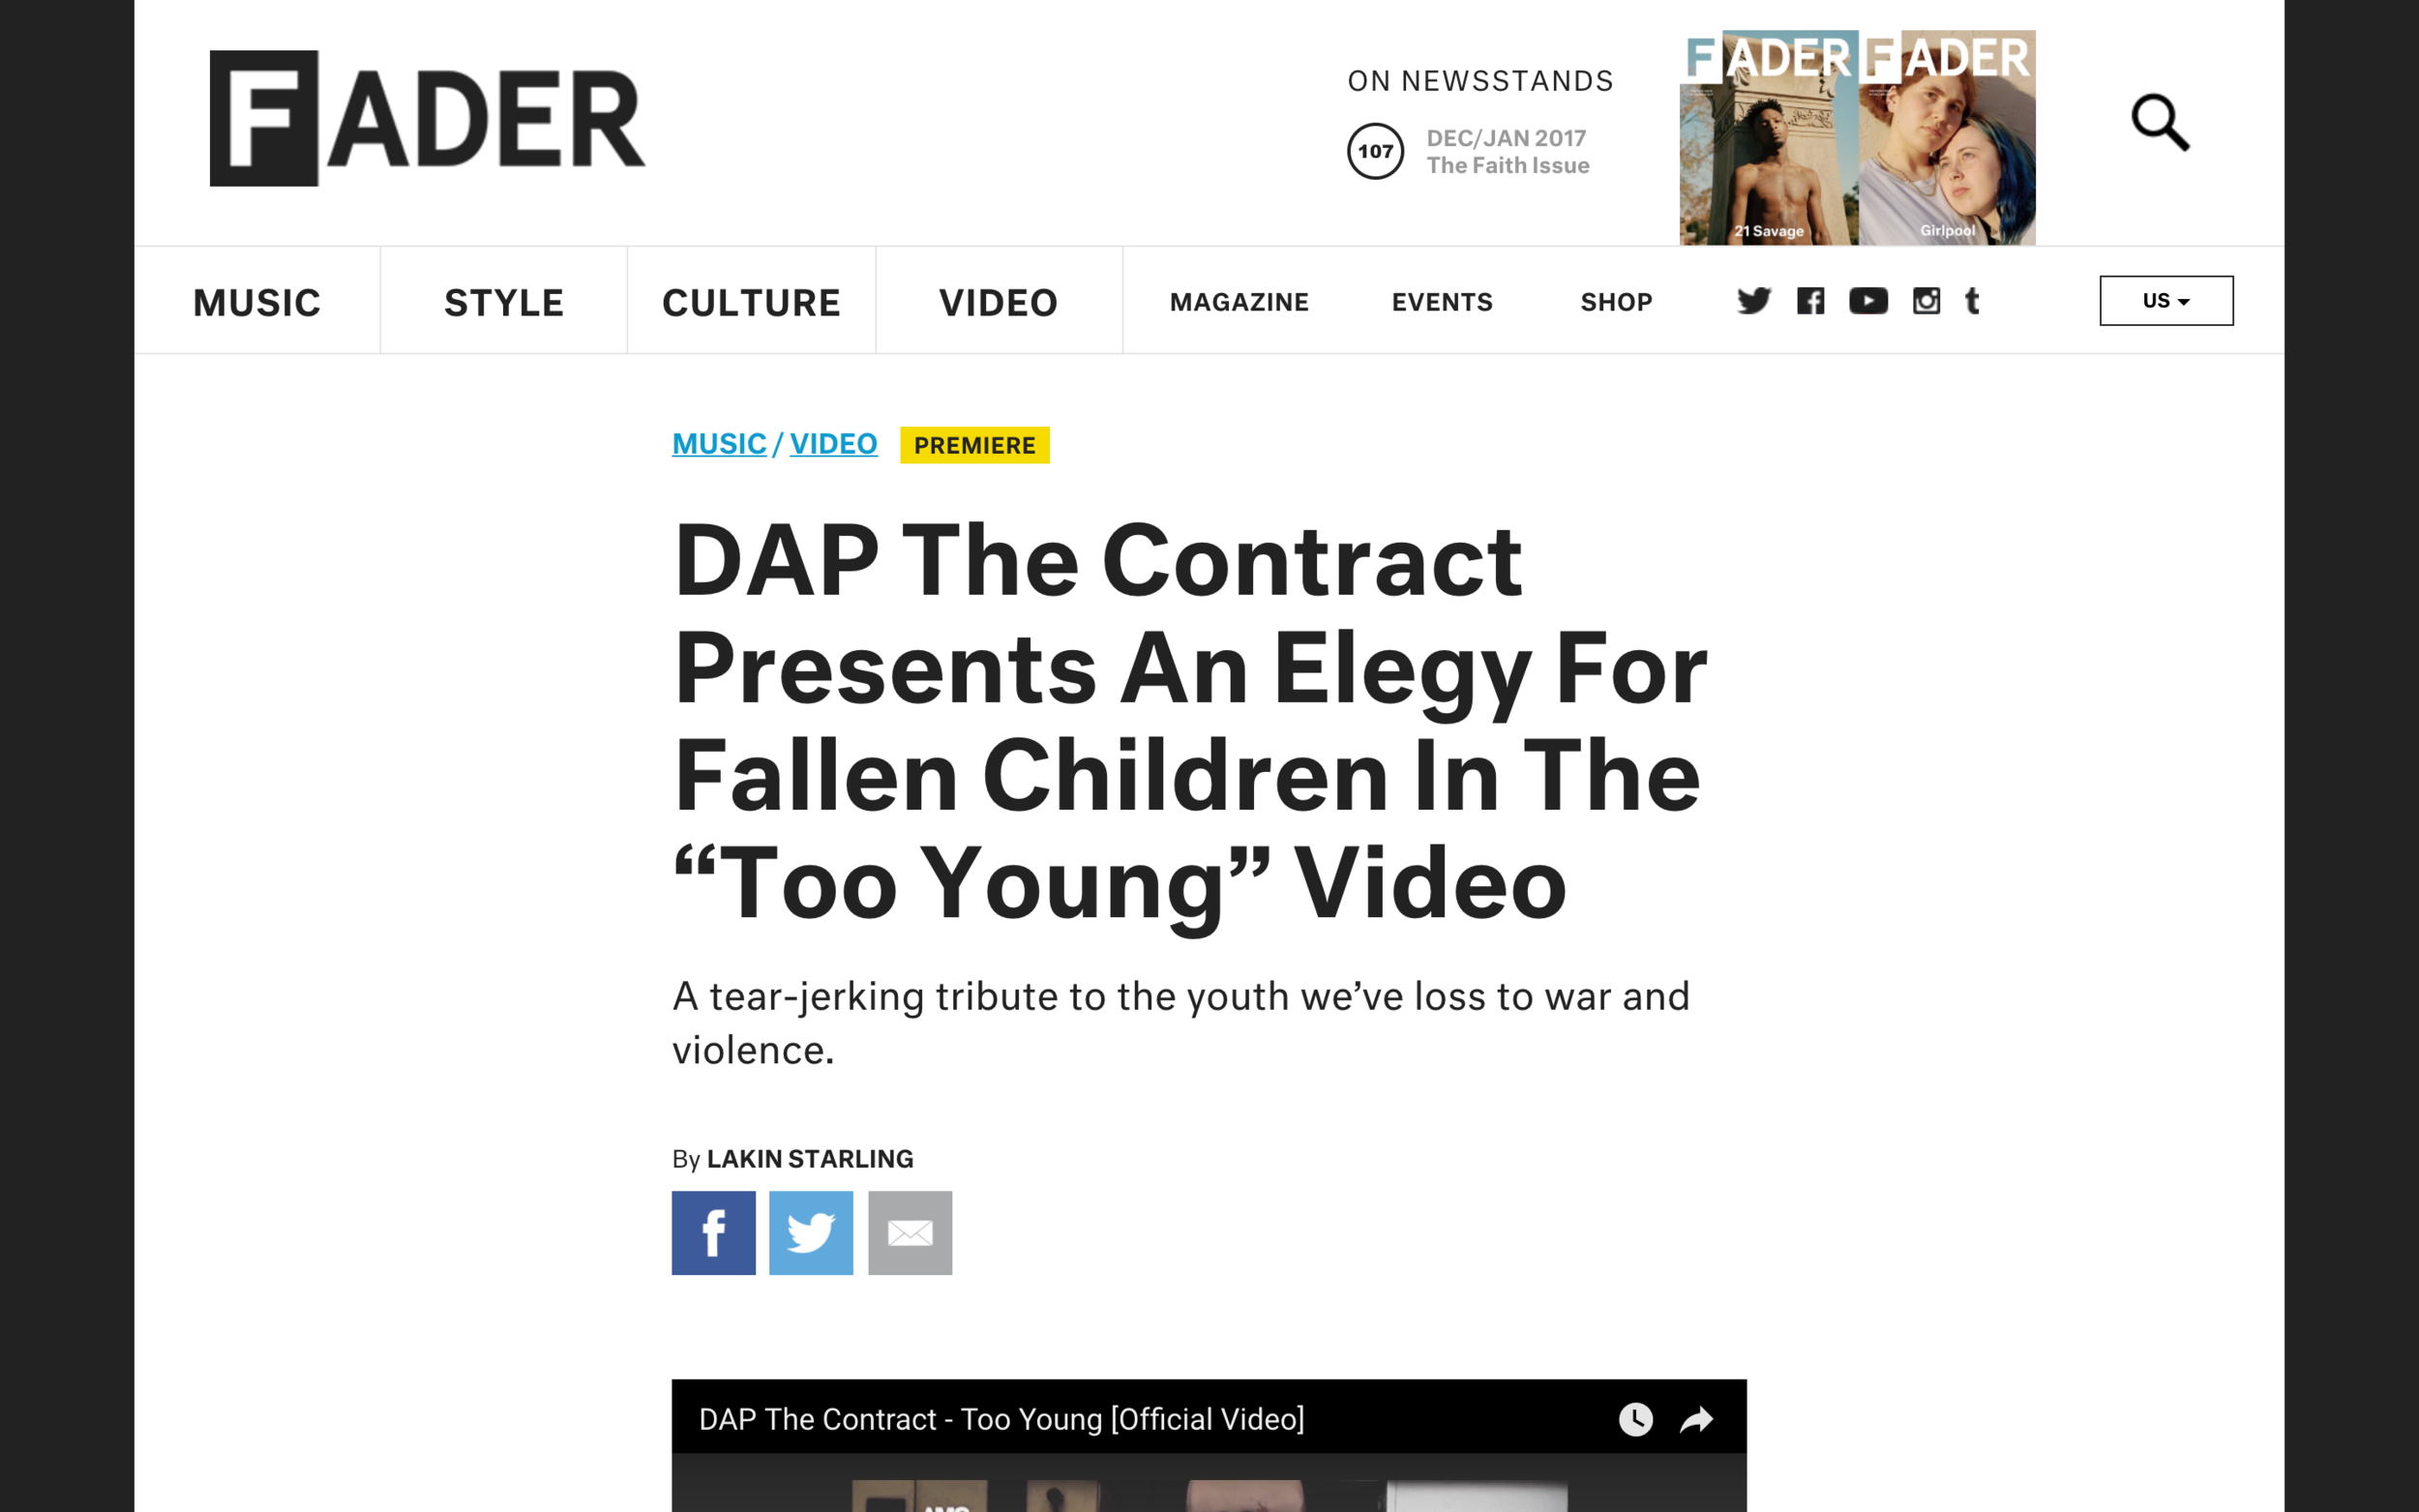 http://www.thefader.com/2017/02/15/dap-the-contract-too-young-video